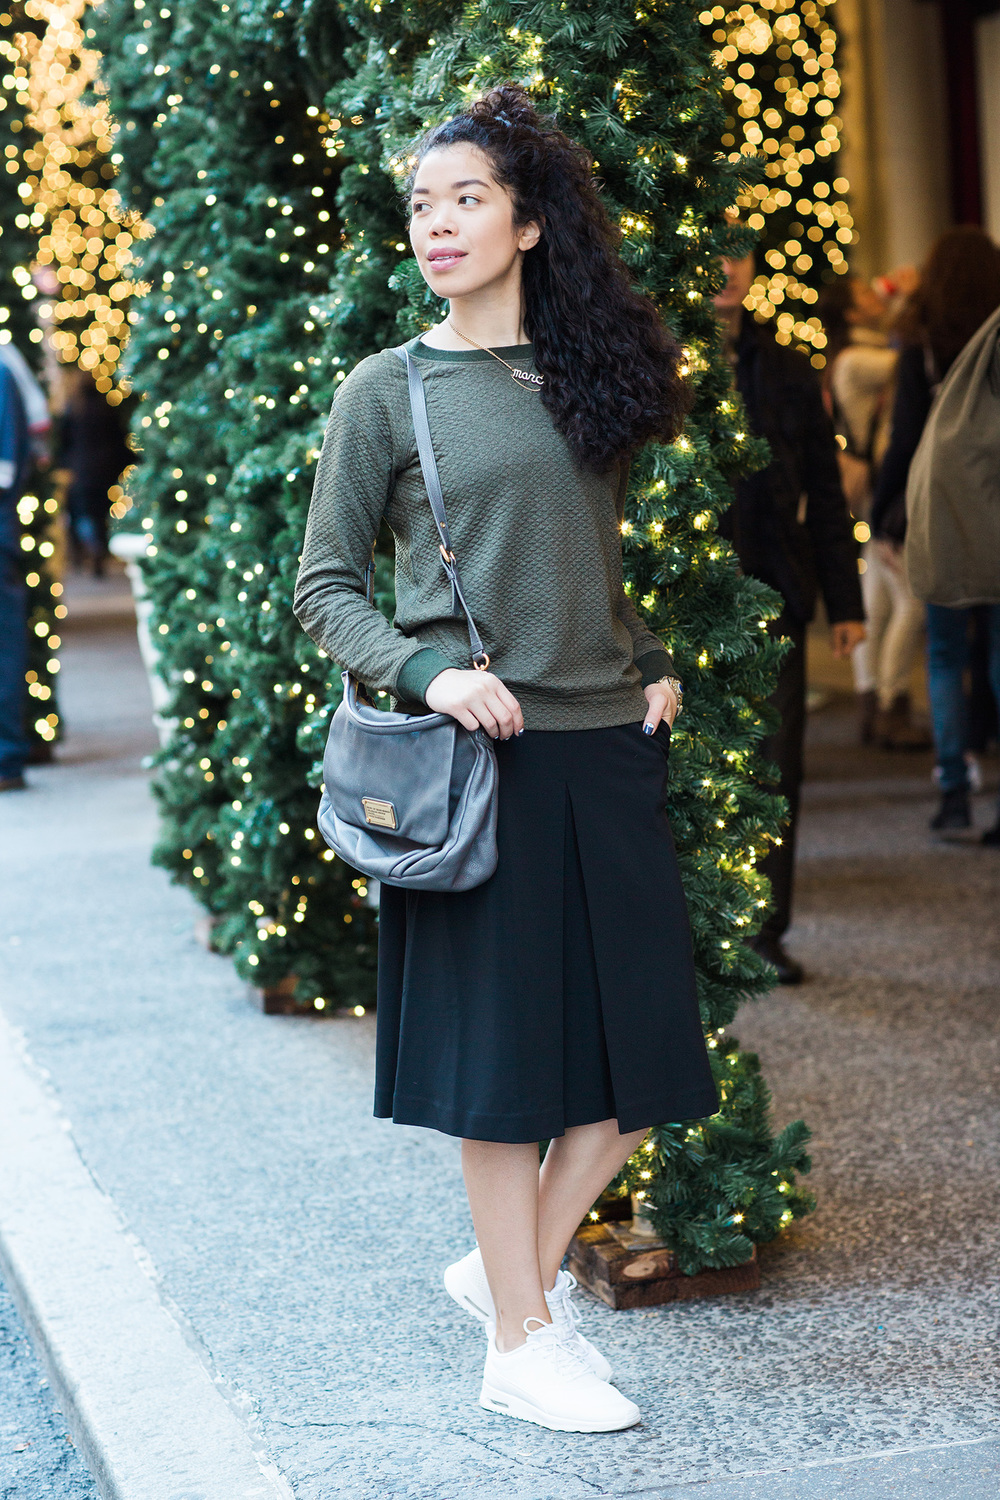 sweater-and-skirt-outfit-ideas.jpg